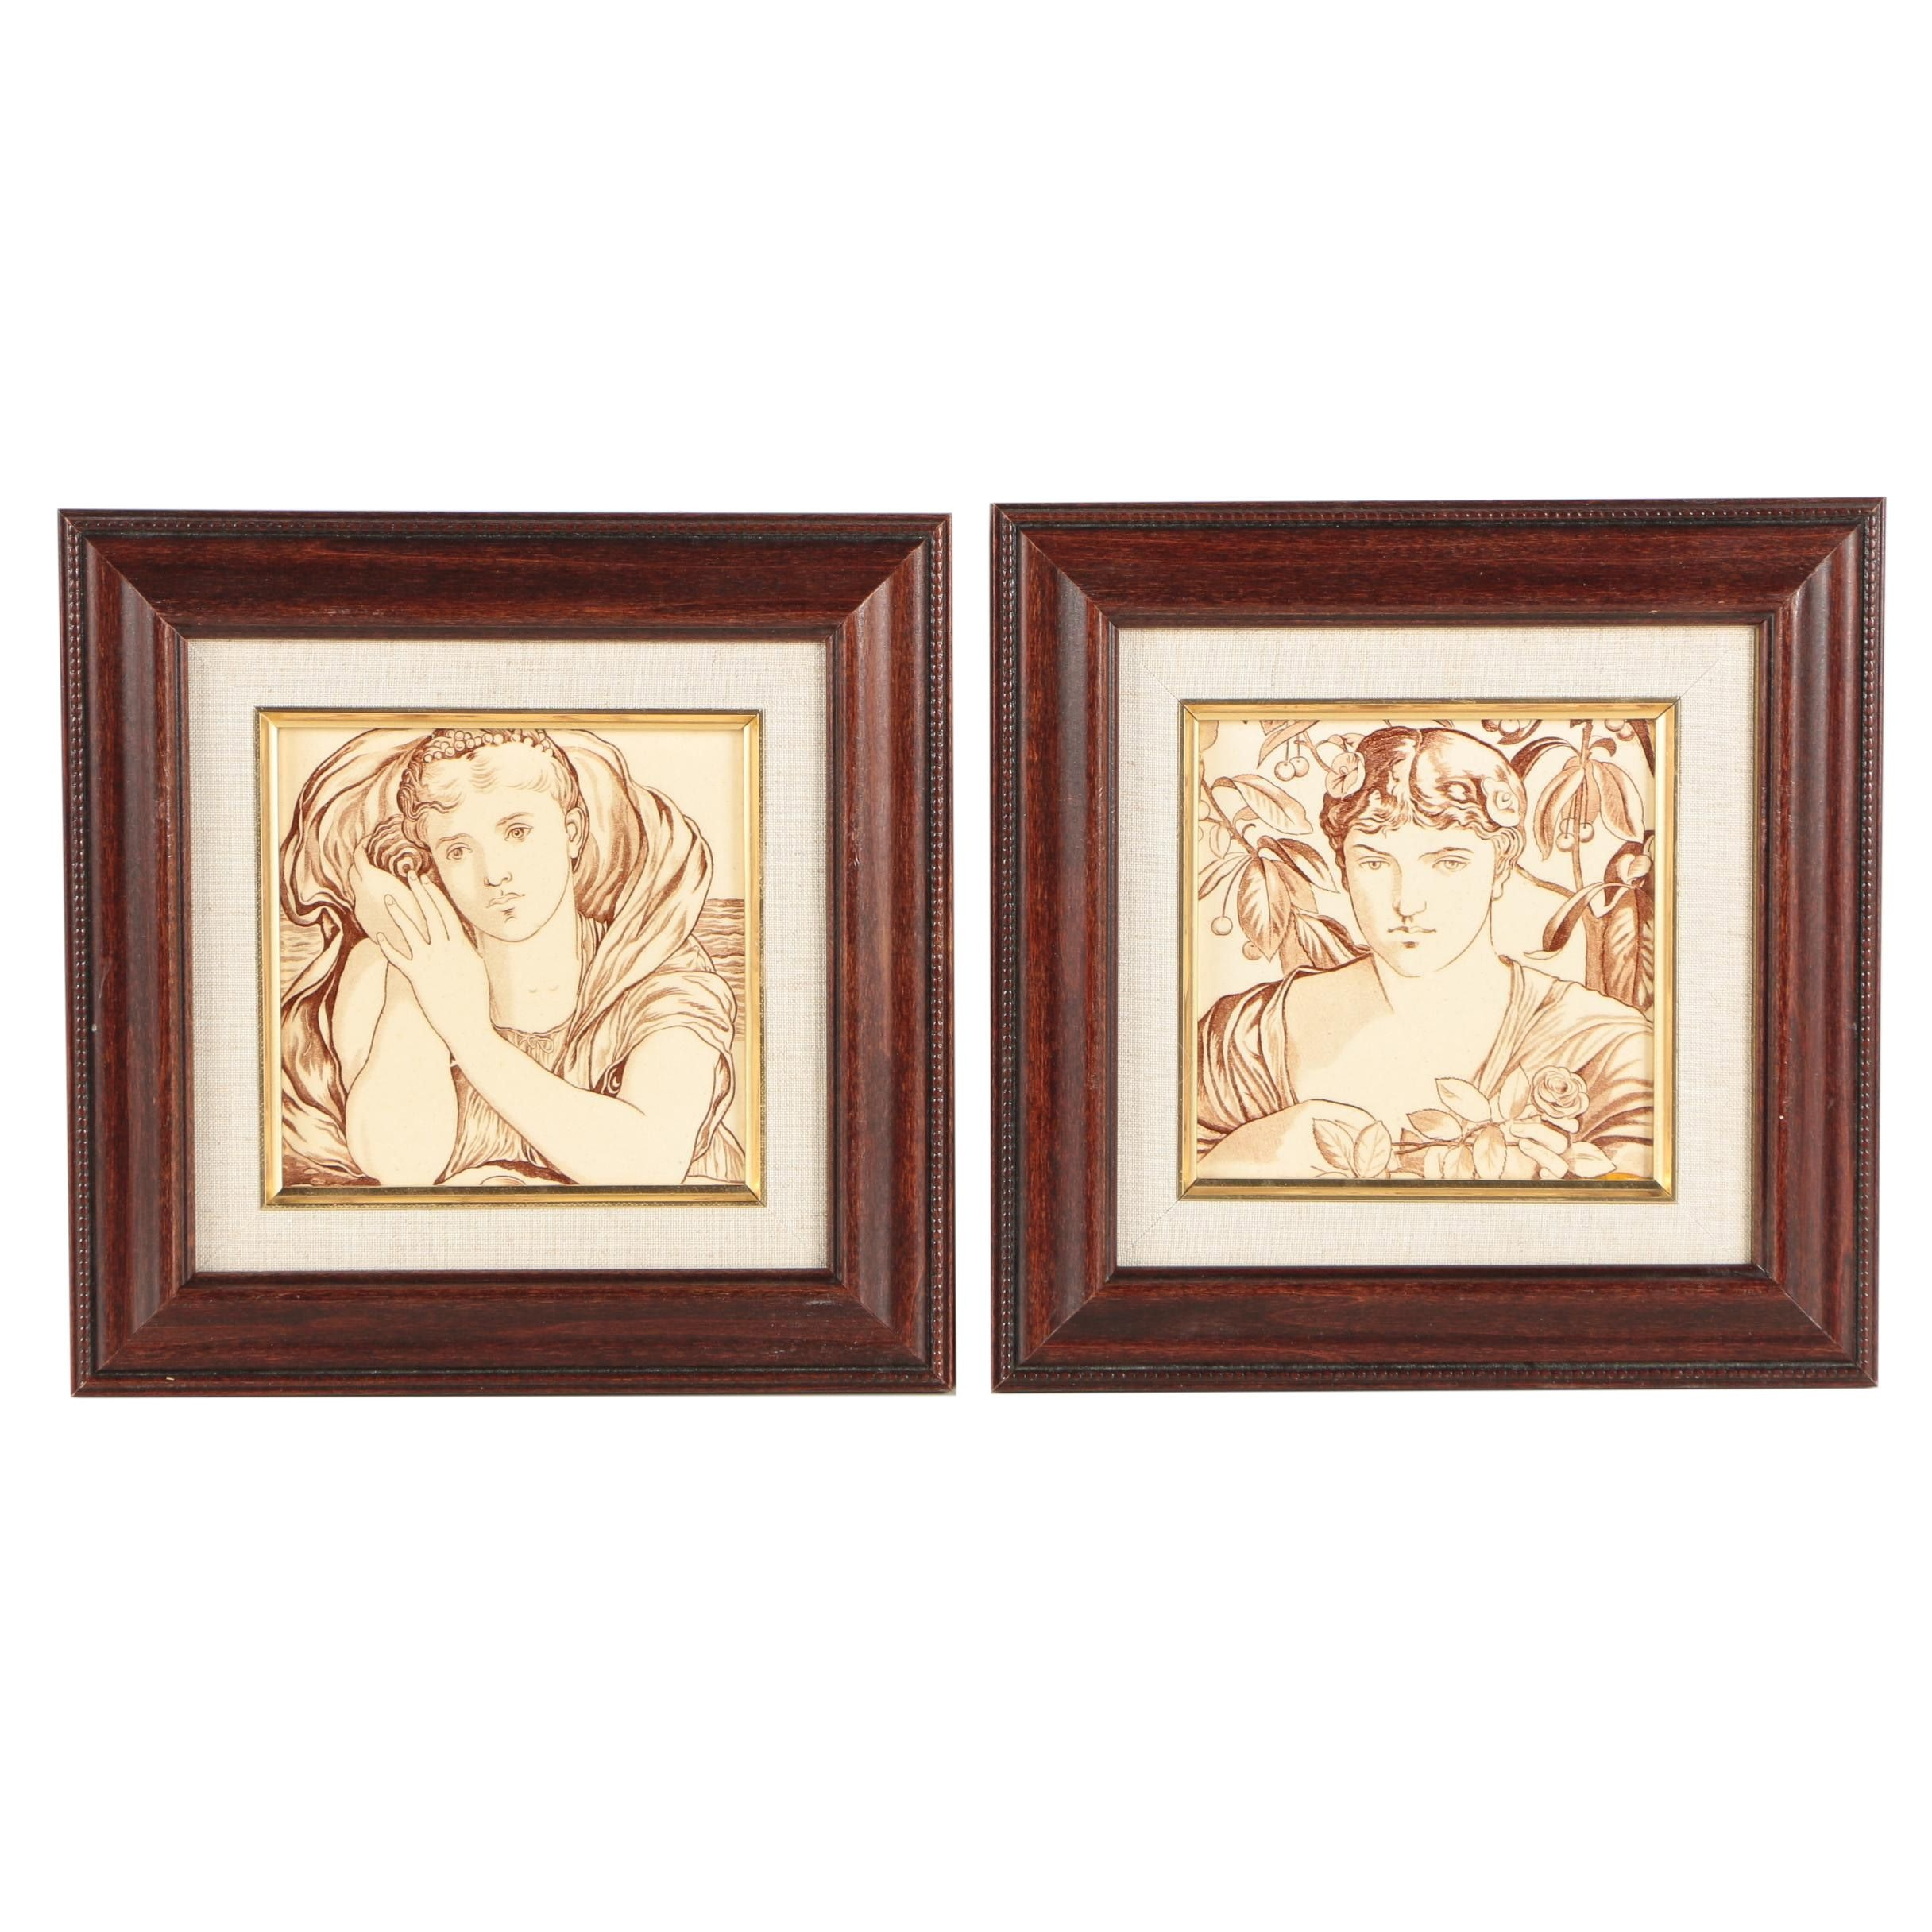 Two Vintage Stipple Engravings on Tile Classical Portraits